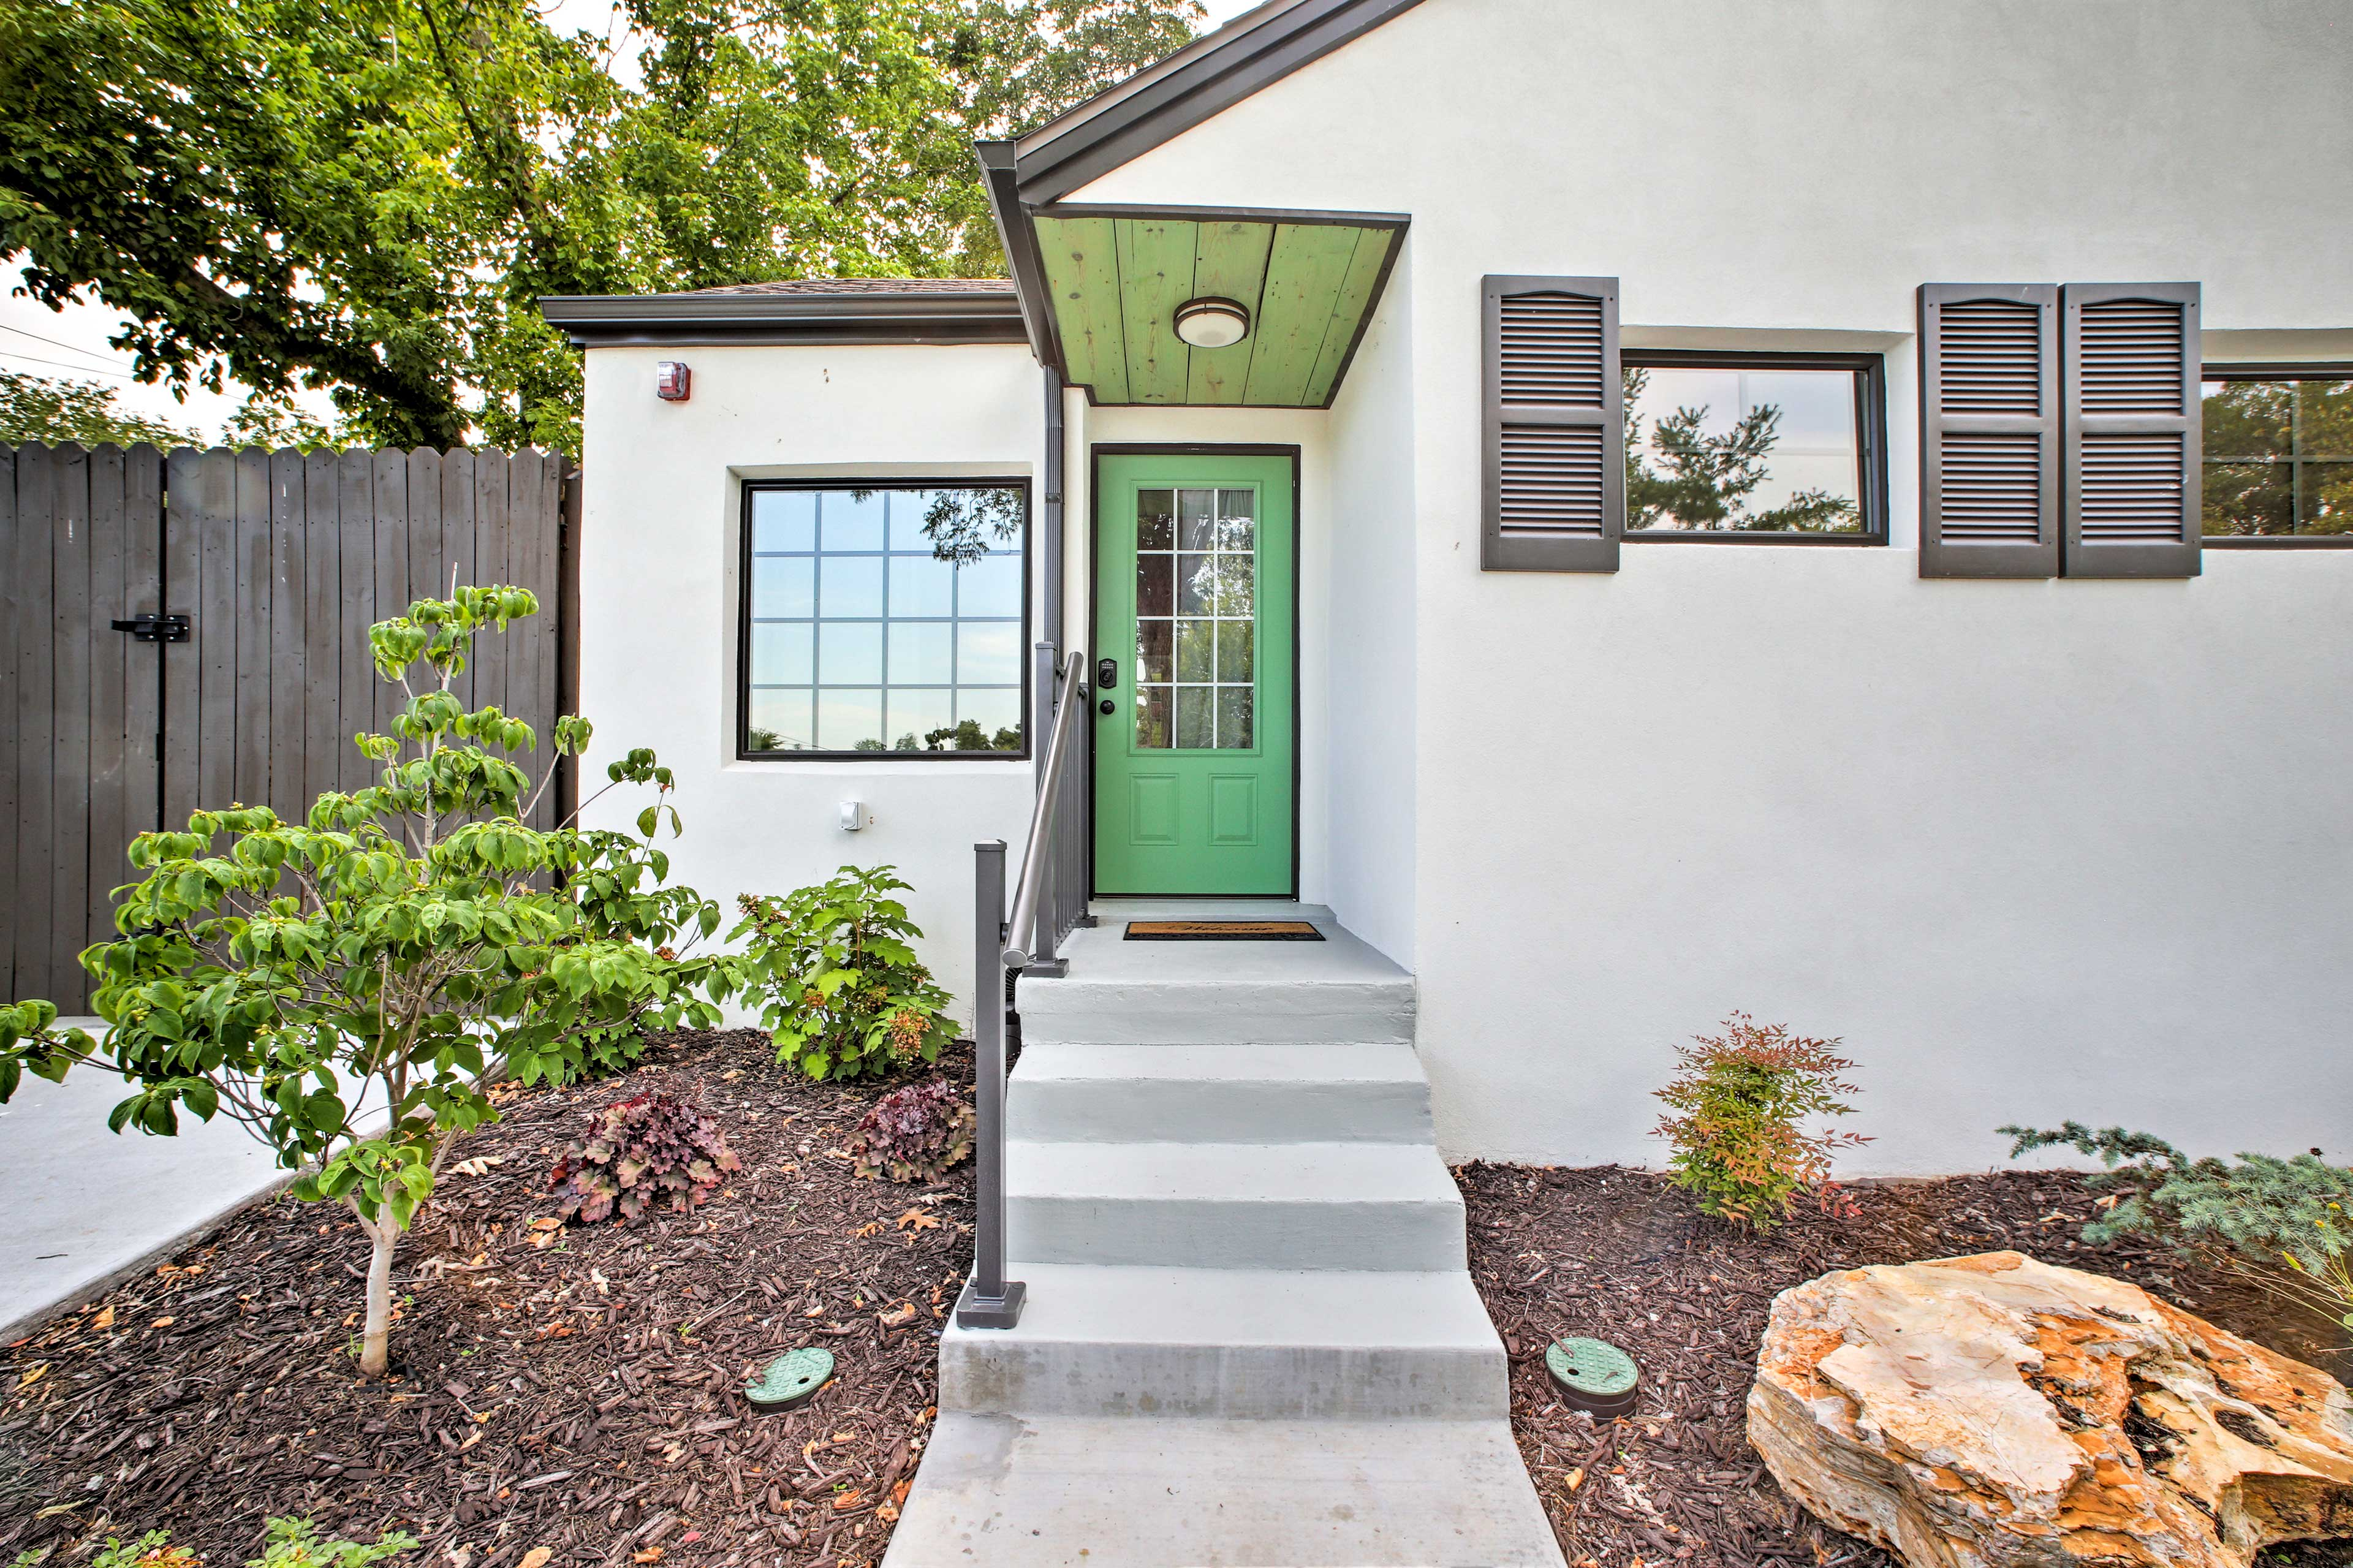 This home is within minutes of the areas best attractions.